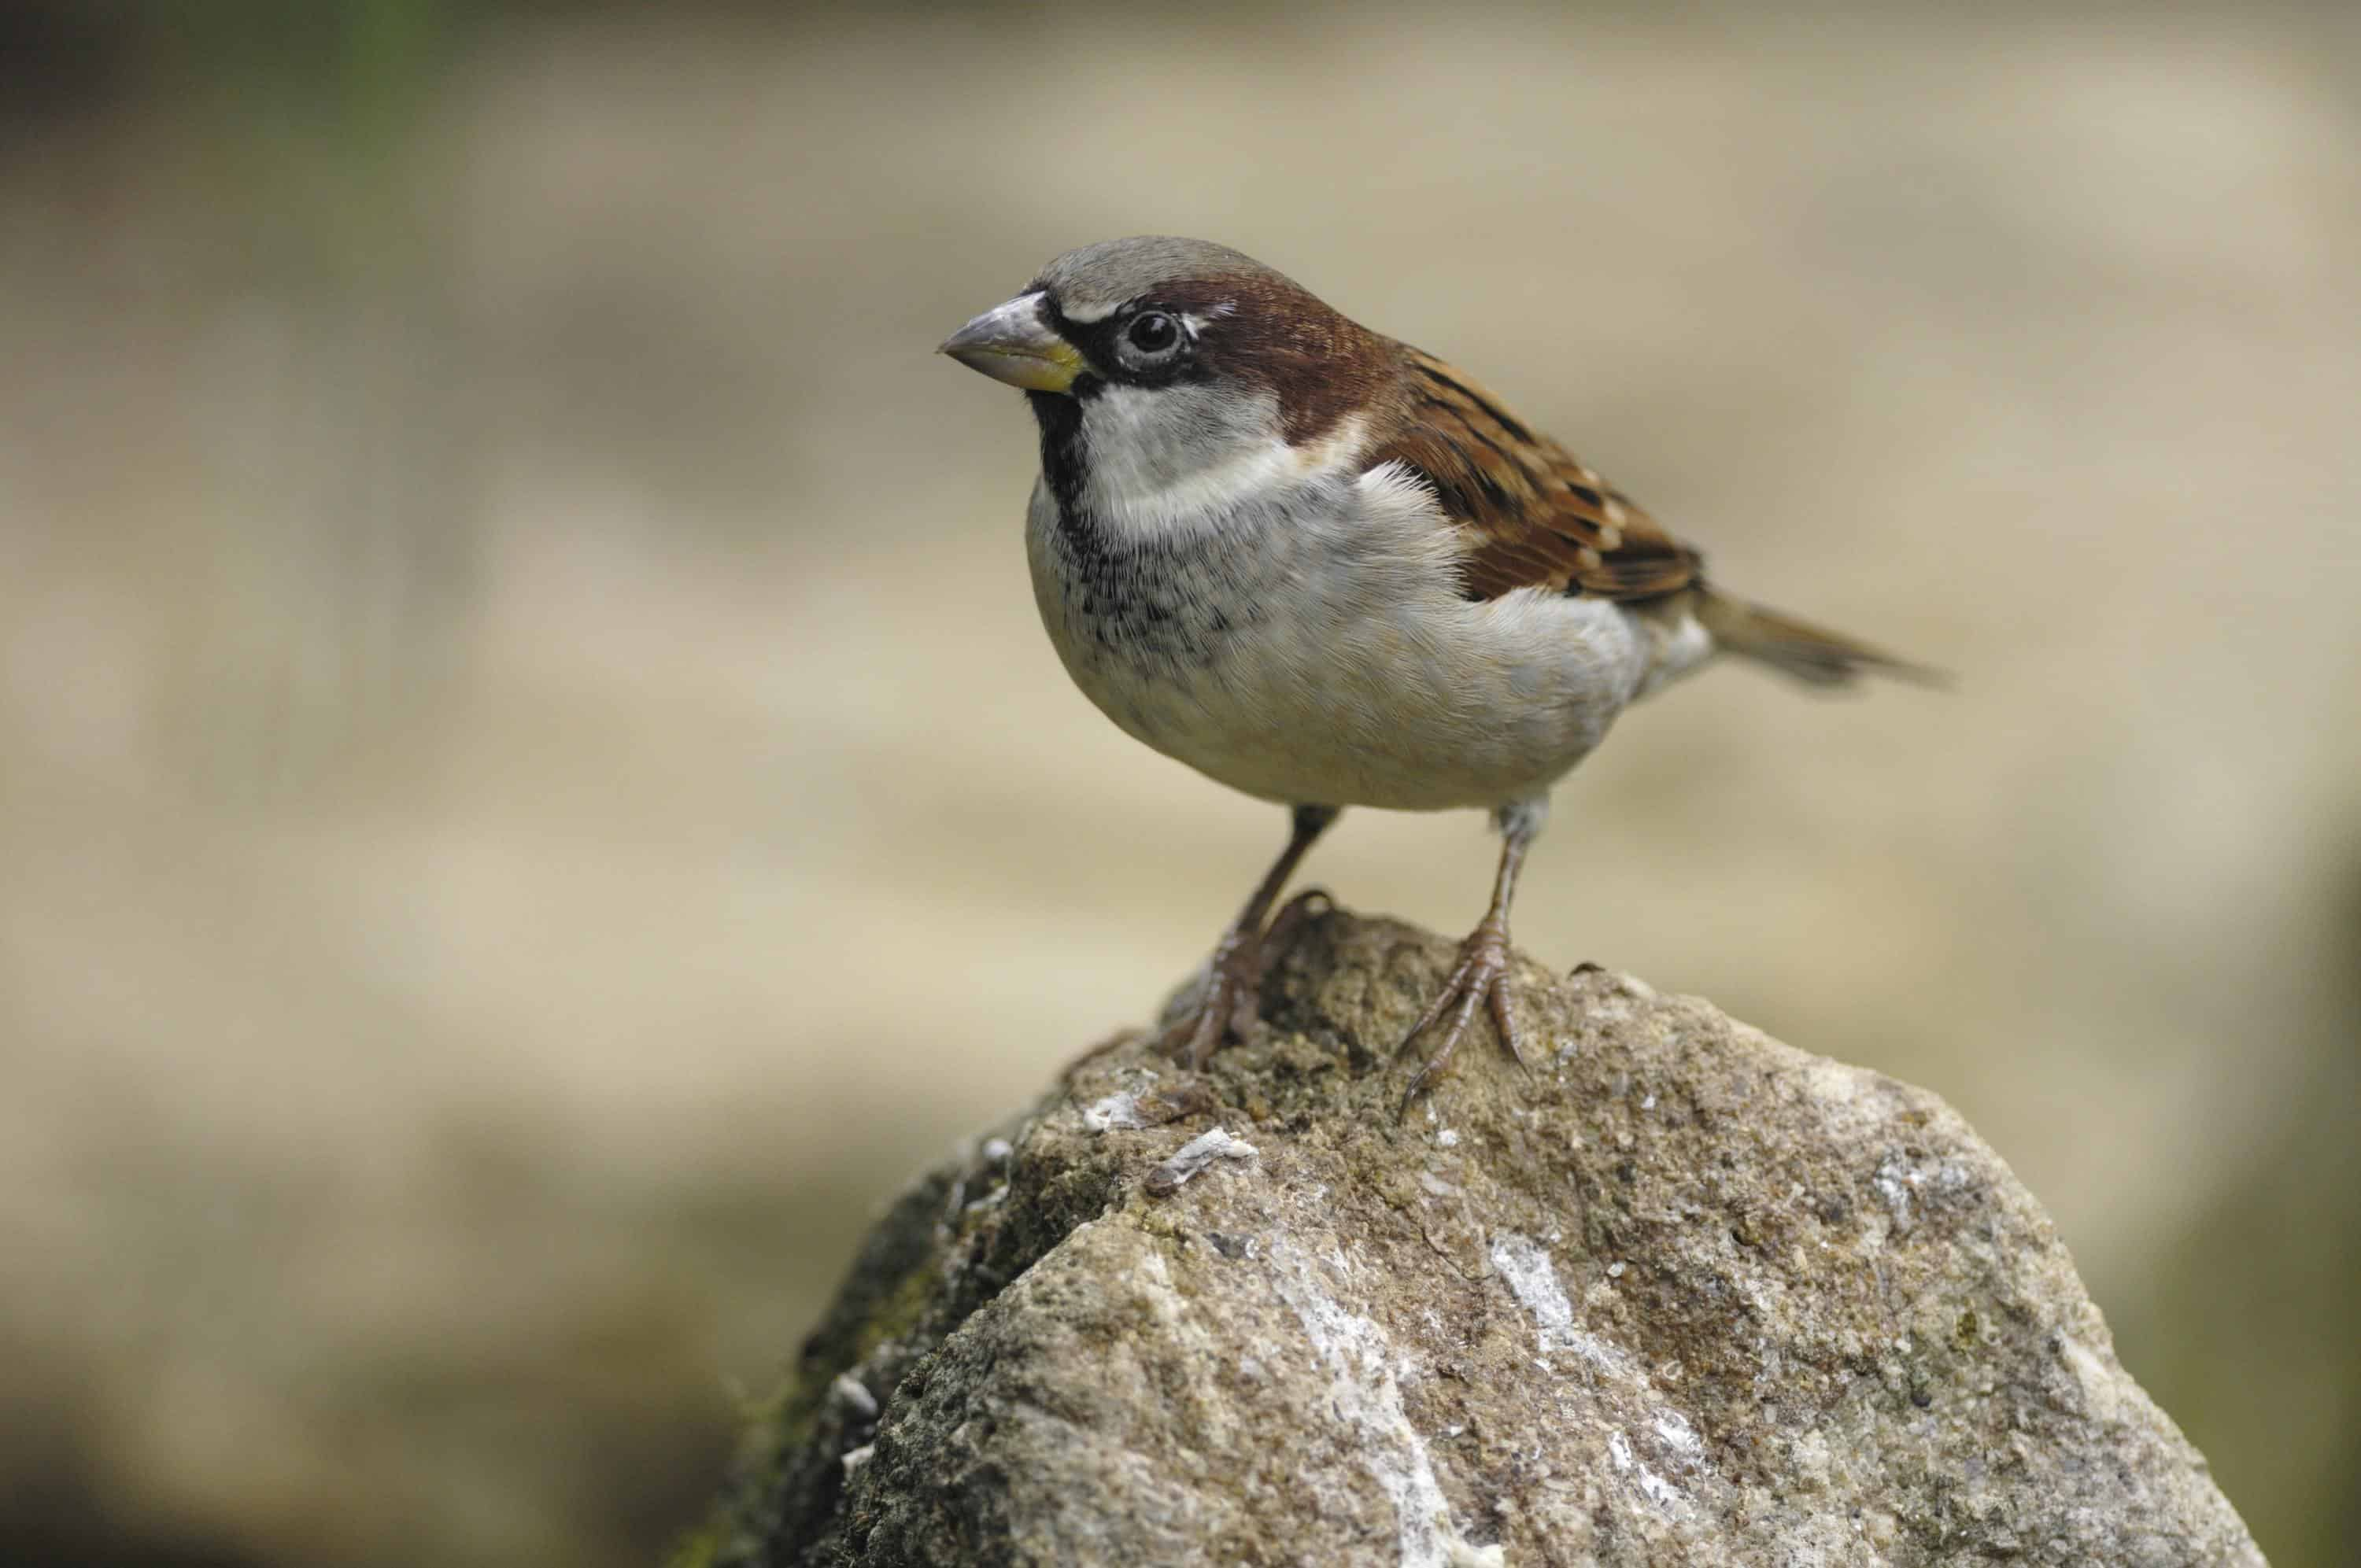 Birds are getting smaller, study finds